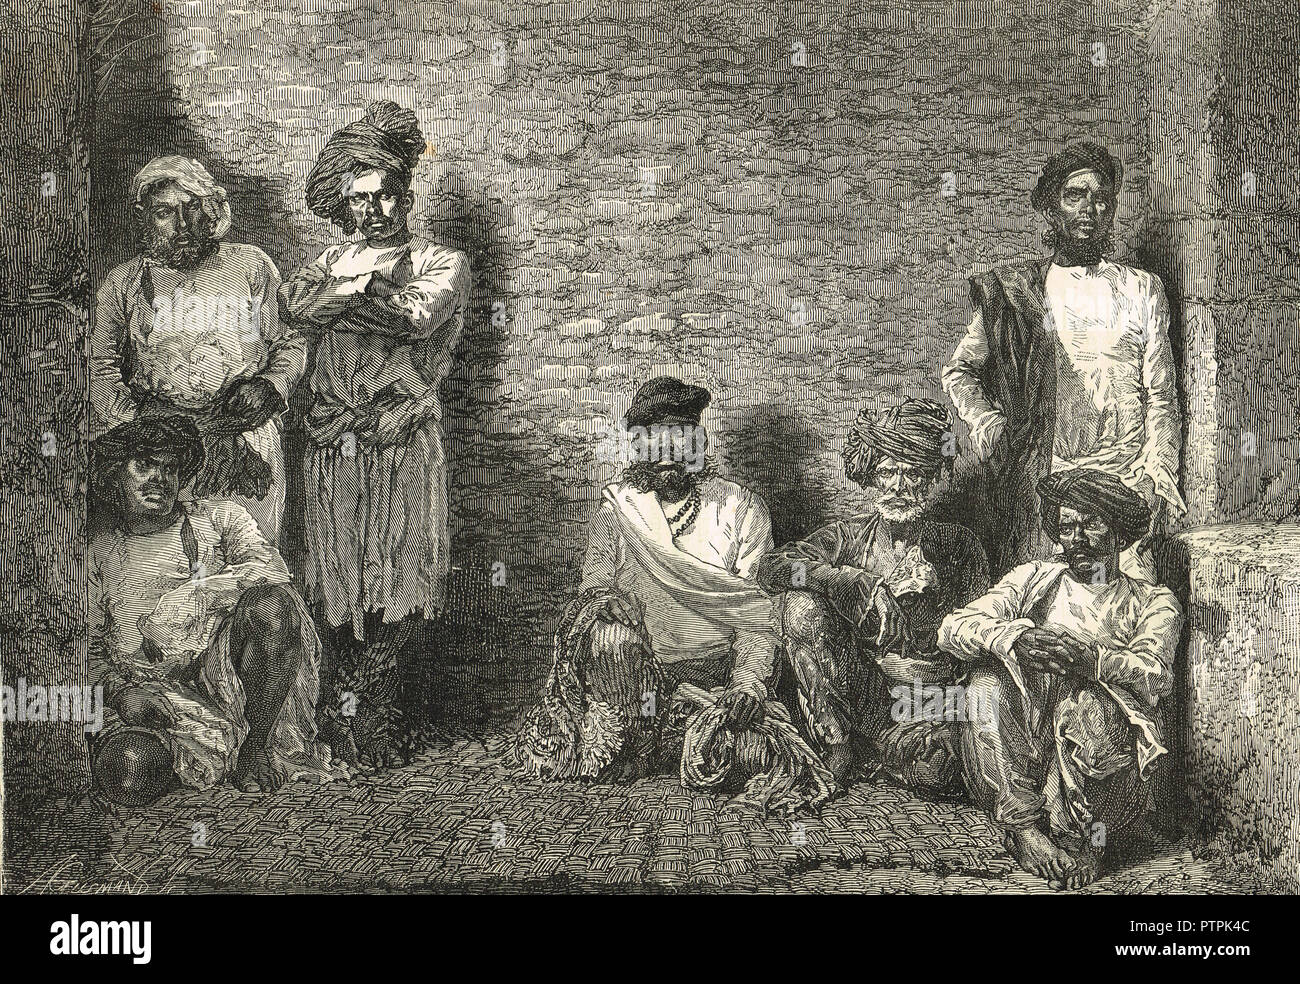 Thugs, Thuggee, tuggee in jail, Aurangabad, Maharashtra, India, circa 1830's. An organised gang of professional robbers and murderers, suppressed by the British rulers of India - Stock Image